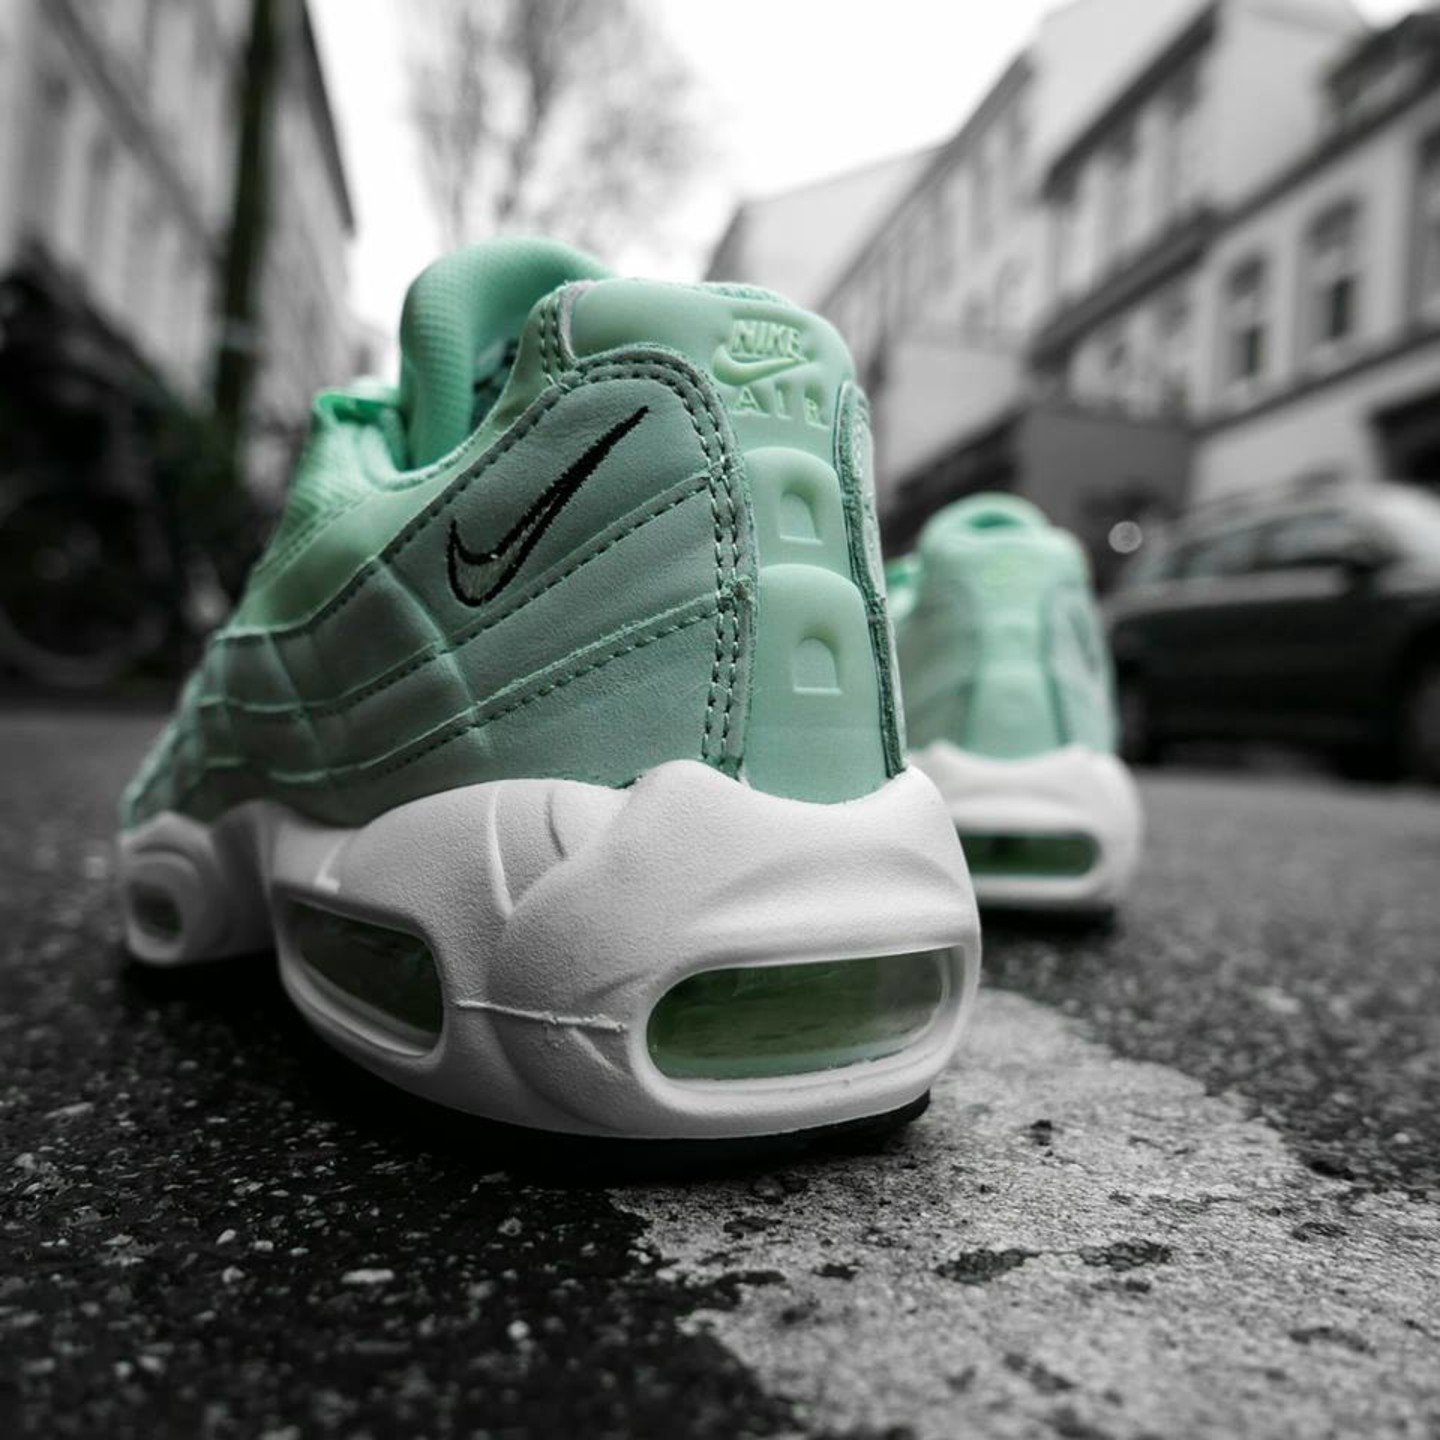 Nike Wmns Air Max 95 Fresh Mint 307960-301